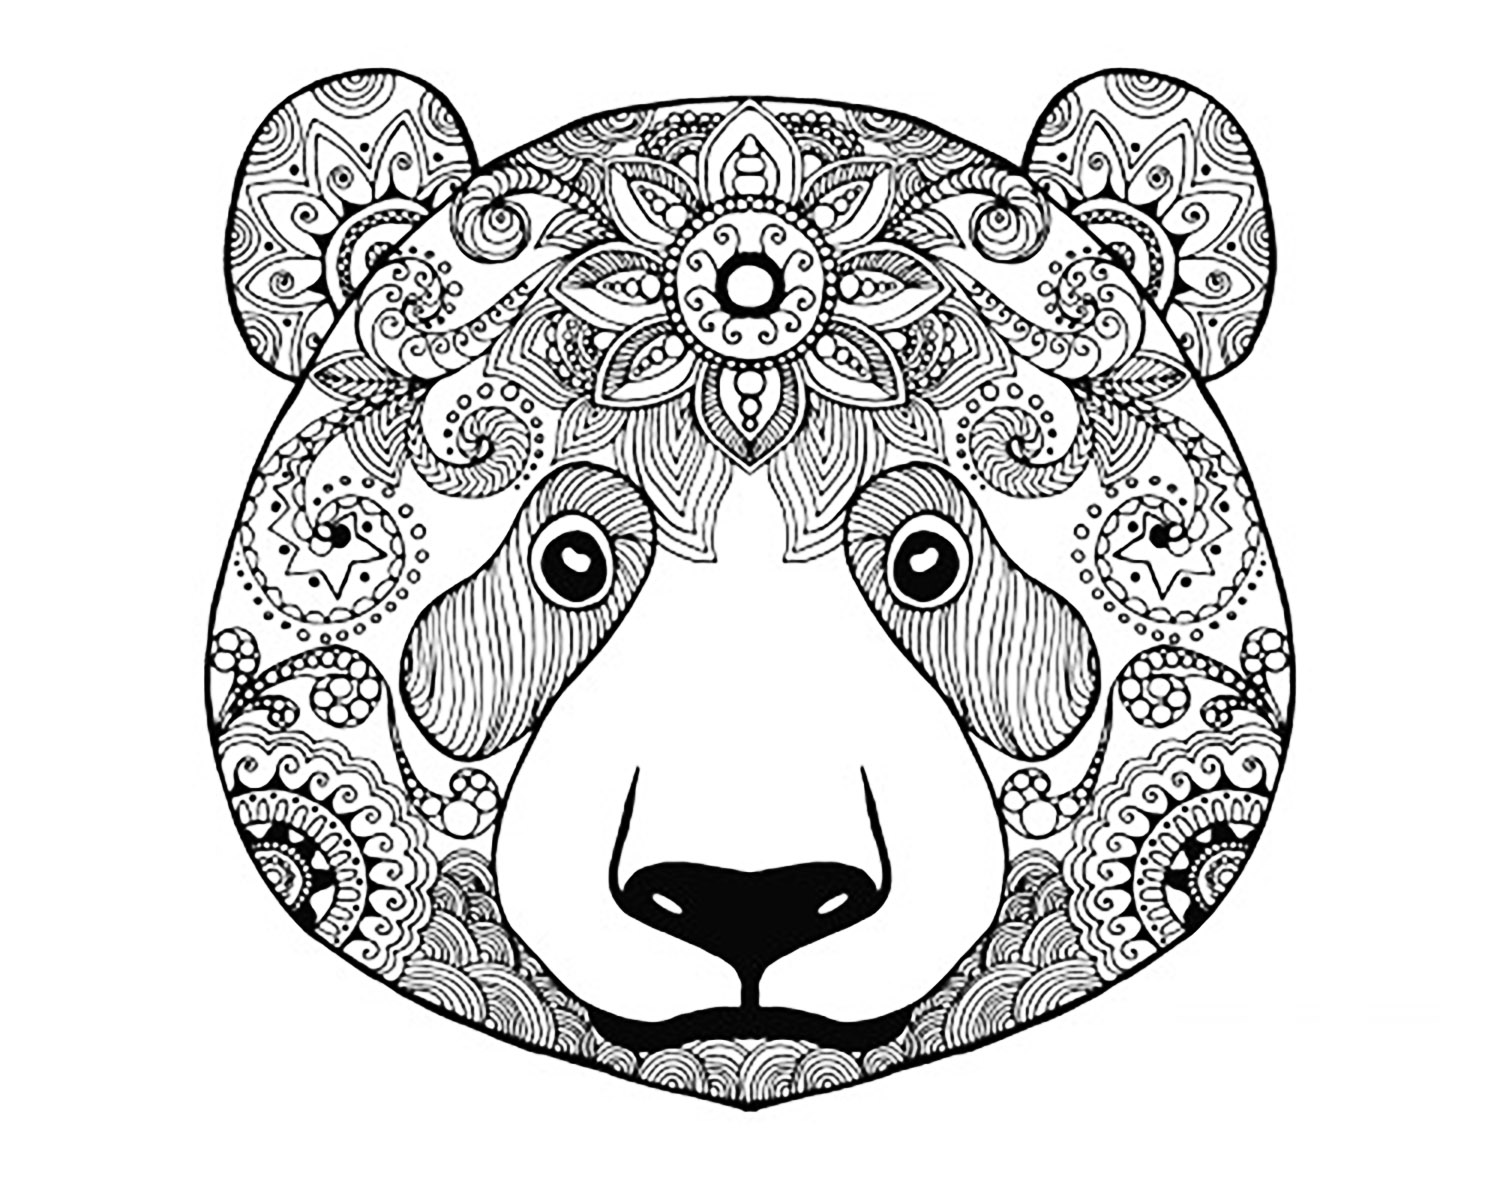 coloring pictures for adults owl coloring pages for adults free detailed owl coloring coloring adults pictures for